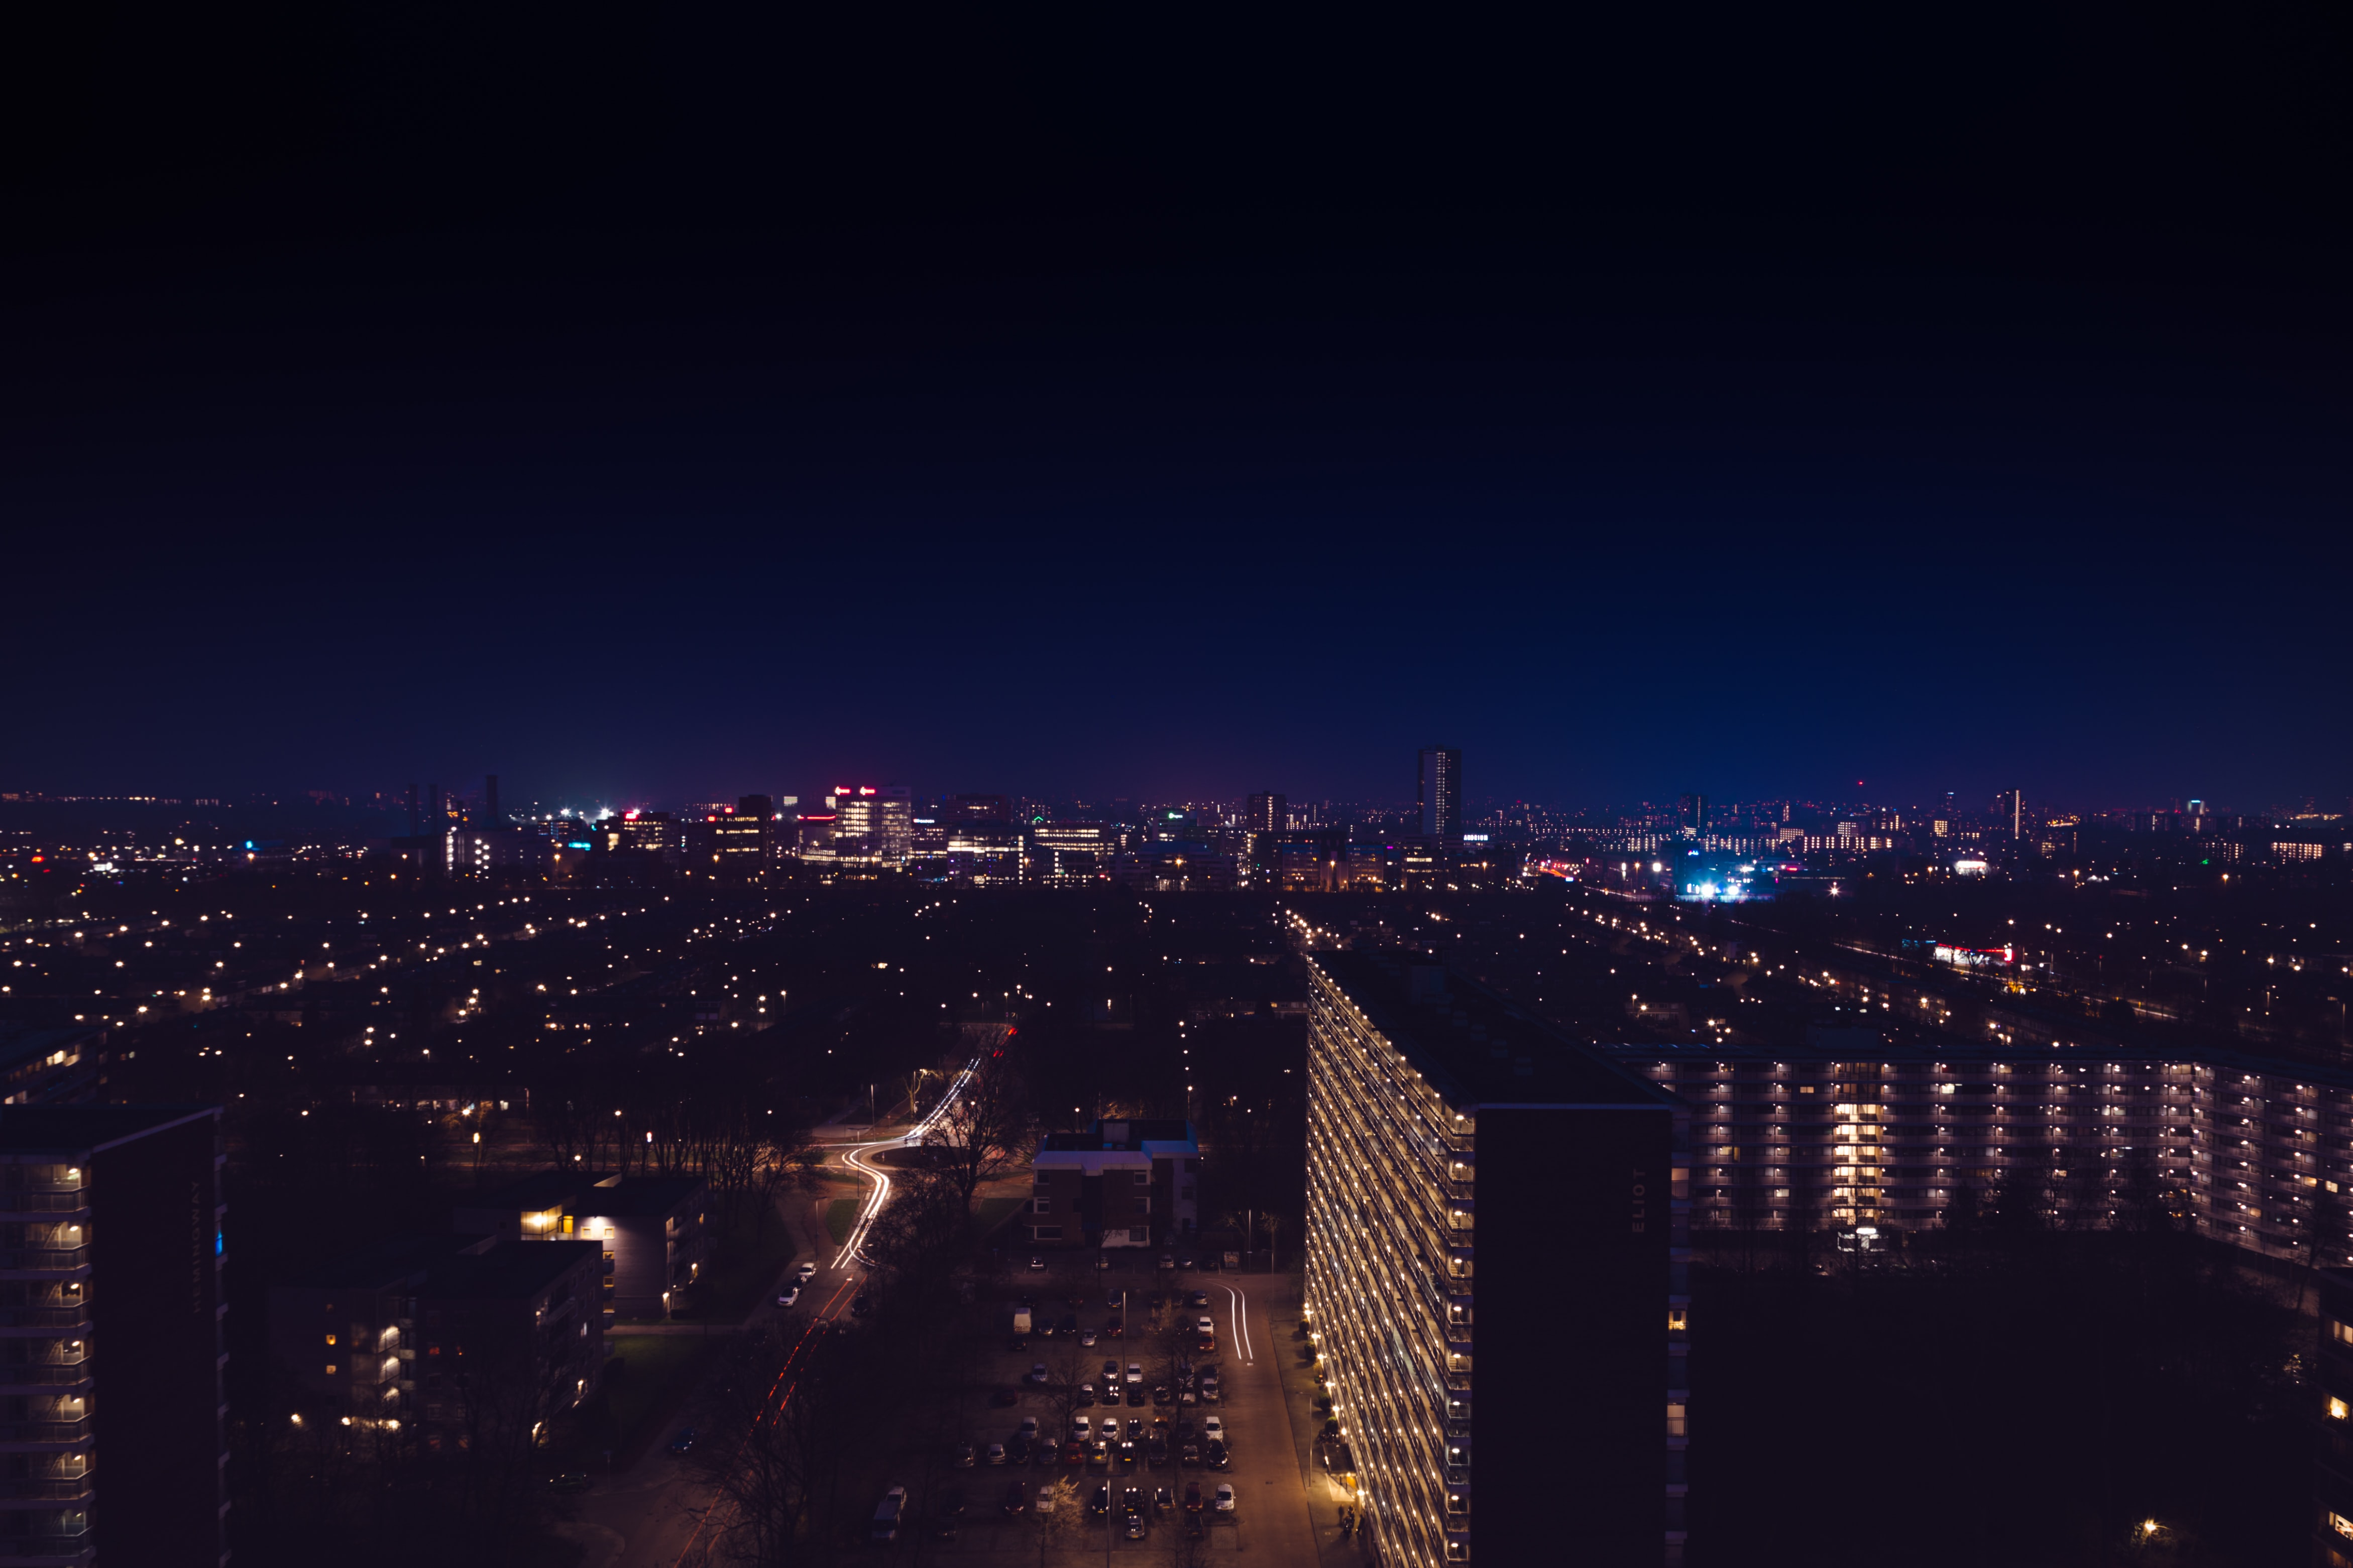 architechtural photography of city sky at night